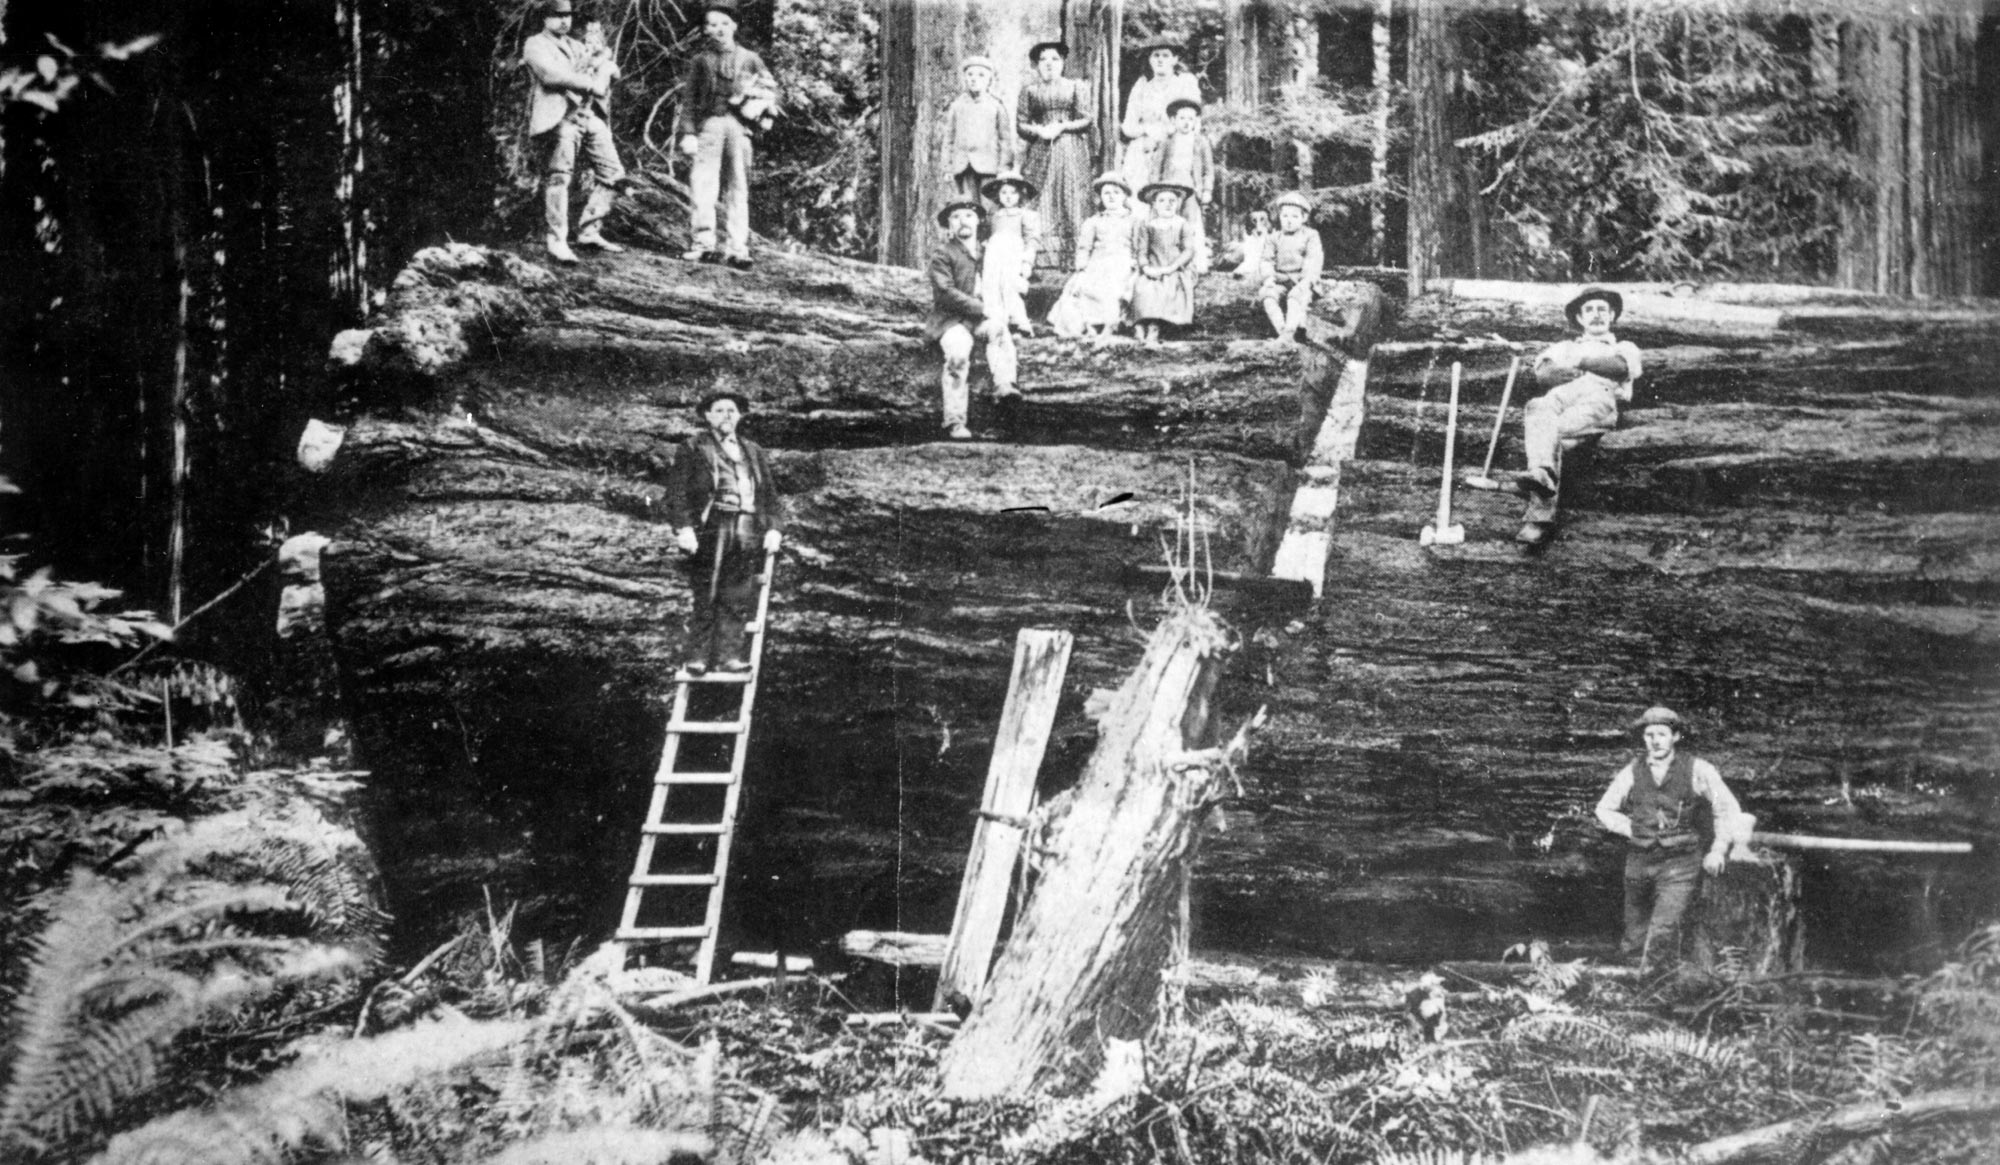 a black and white image of several people (men, women and children) sitting on a very large felled old growth tree. a ladder is placed against the tree for people to reach the top